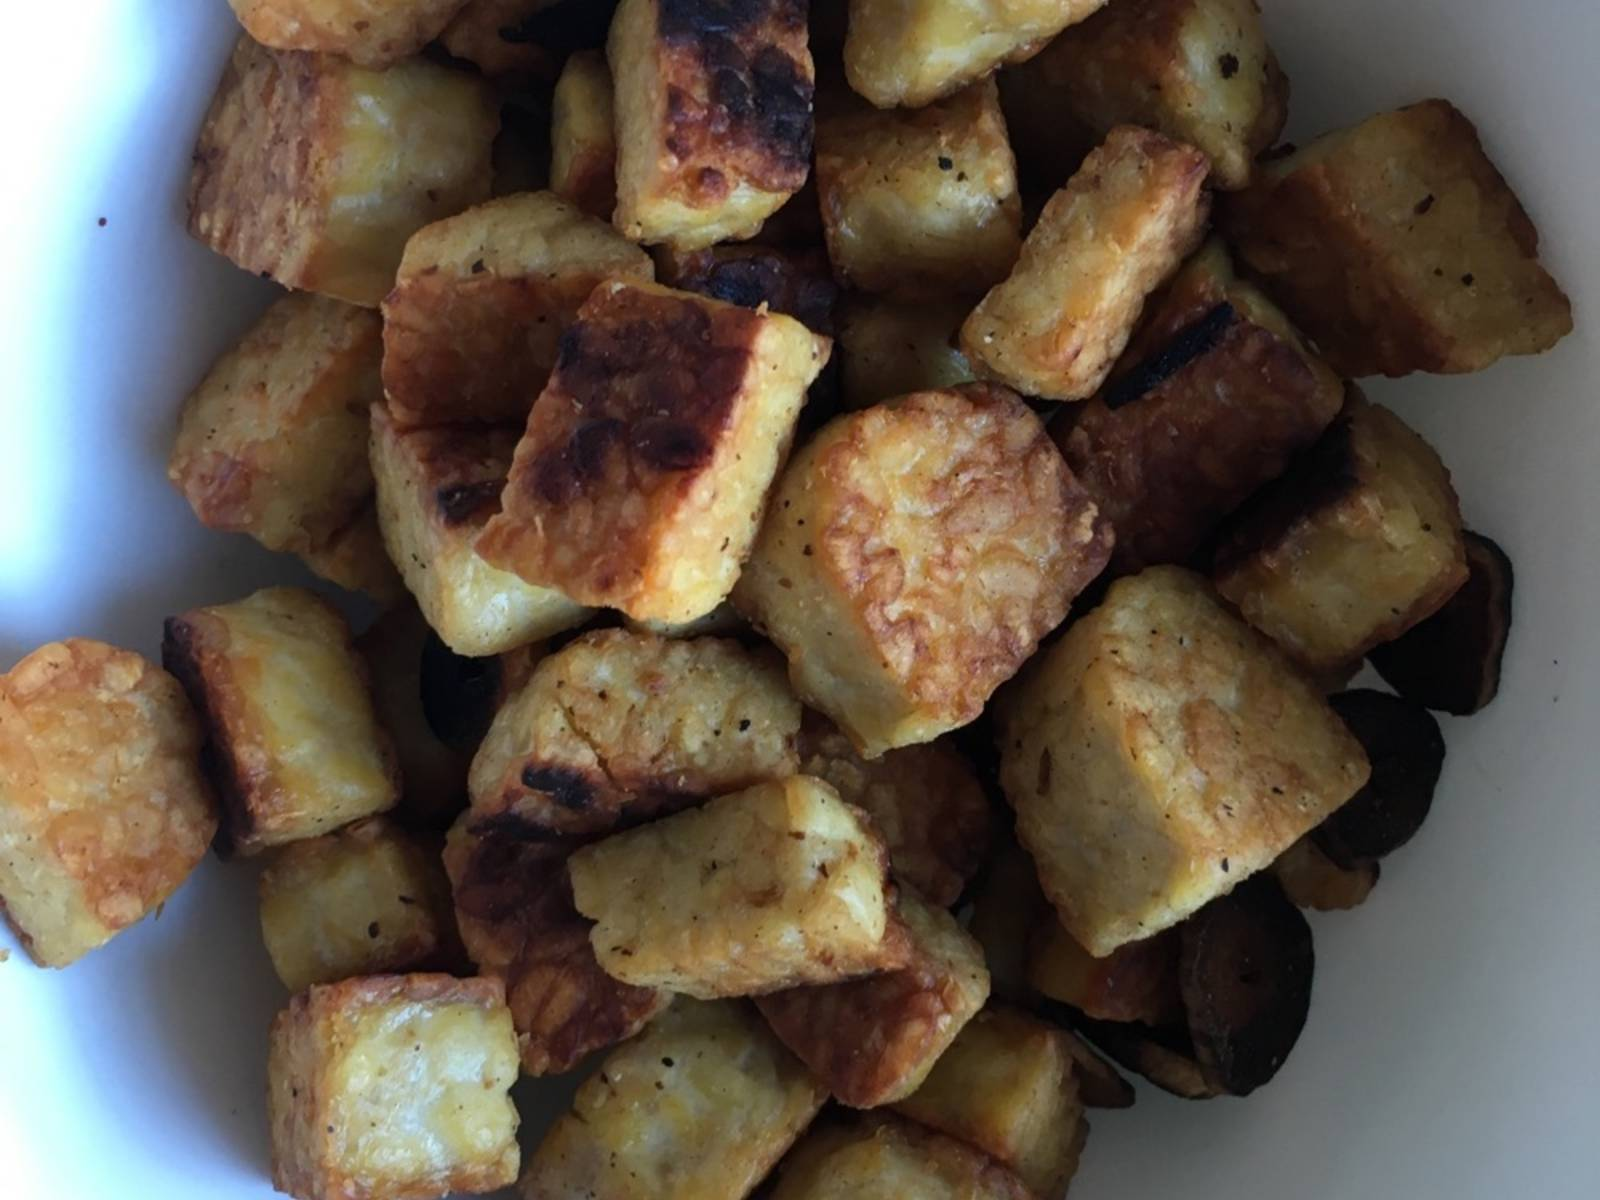 Fry the tempeh with garlic in olive oil. Make sure each side of the tempeh is crispy and golden. This might take about 15 – 20 min. Then add a pinch of salt after frying.